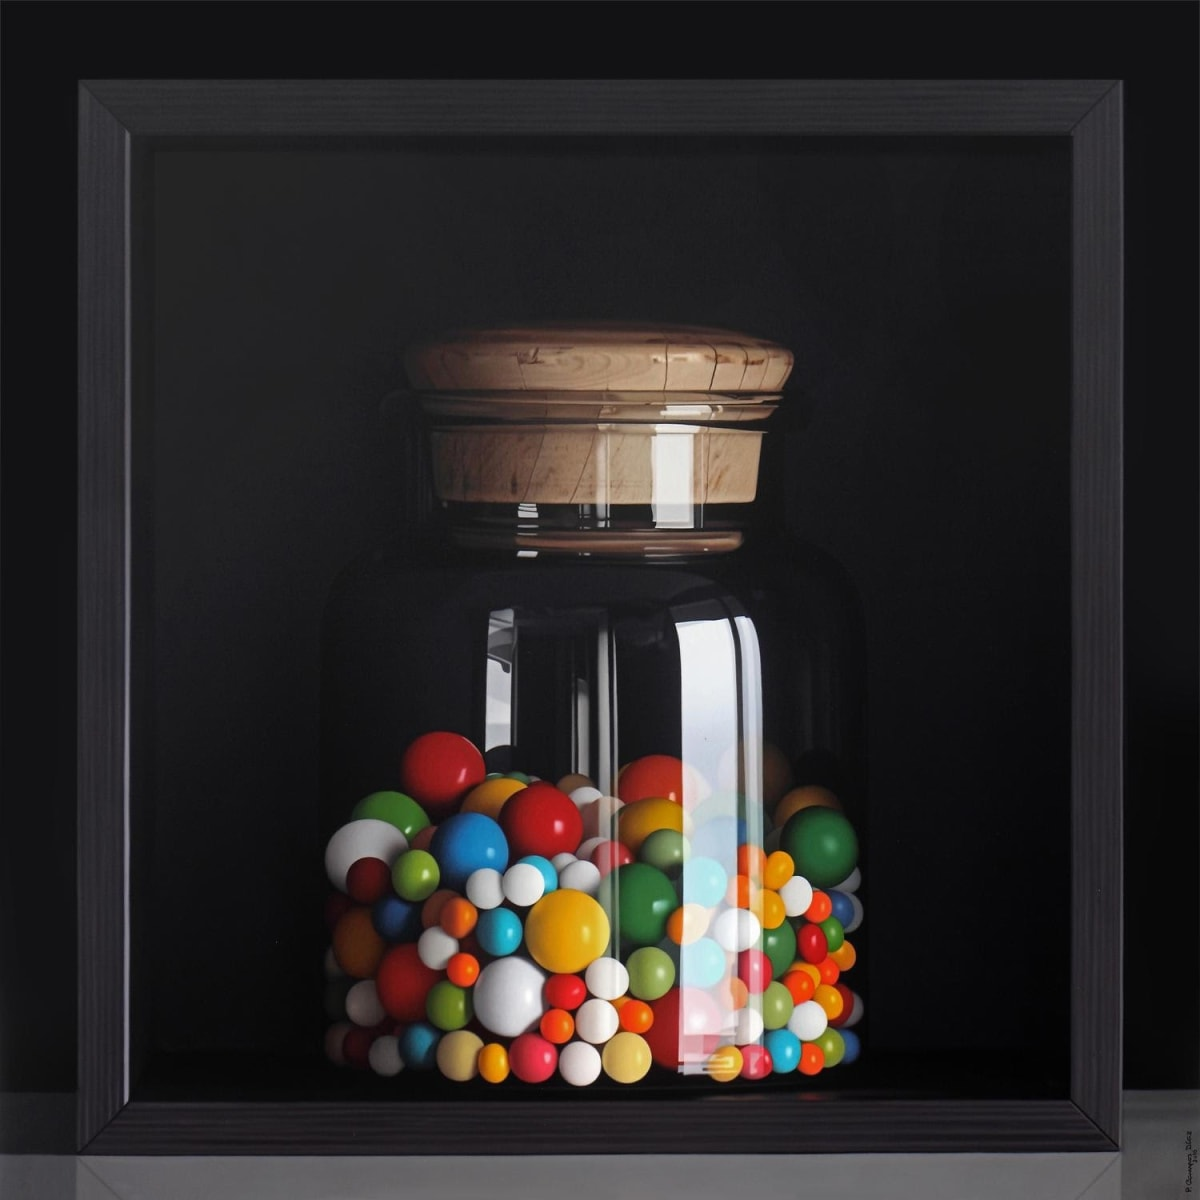 Pedro Campos Sweet Candies Oil on canvas 150 x 150 cm